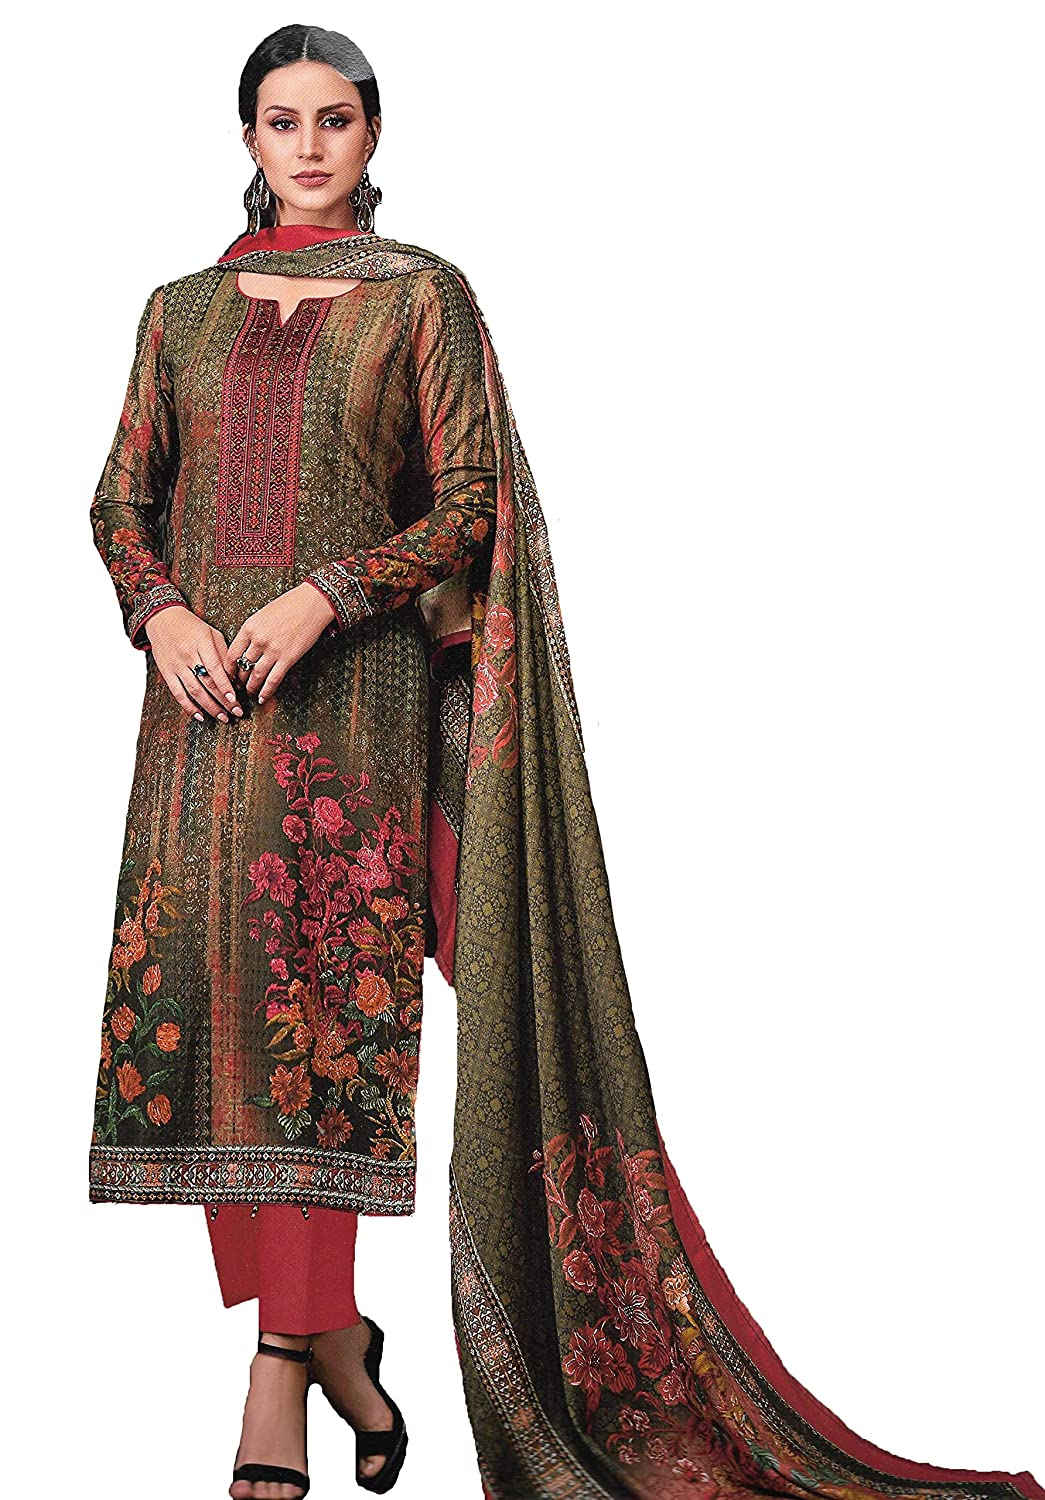 4caa782b4b Elegance Fashion And You Woolen SPUN Pashmina EMBROIDERED UNSTITCHED dress  material with WOOLEN SHAWL for winter for women: Amazon.in: Clothing & ...